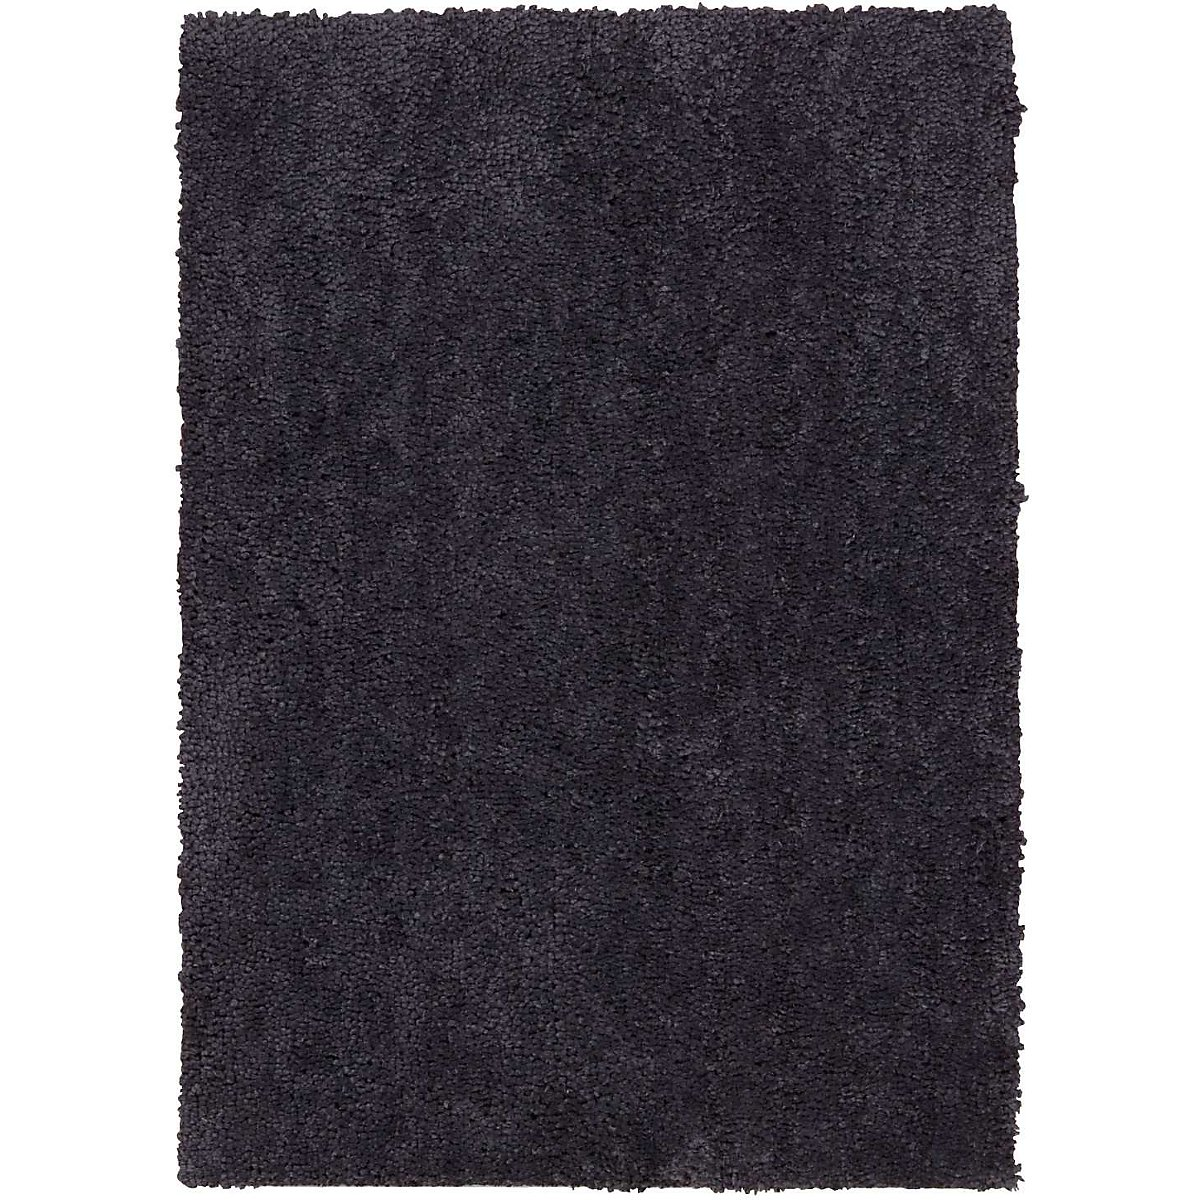 Puli Dark Gray 5X7 Area Rug